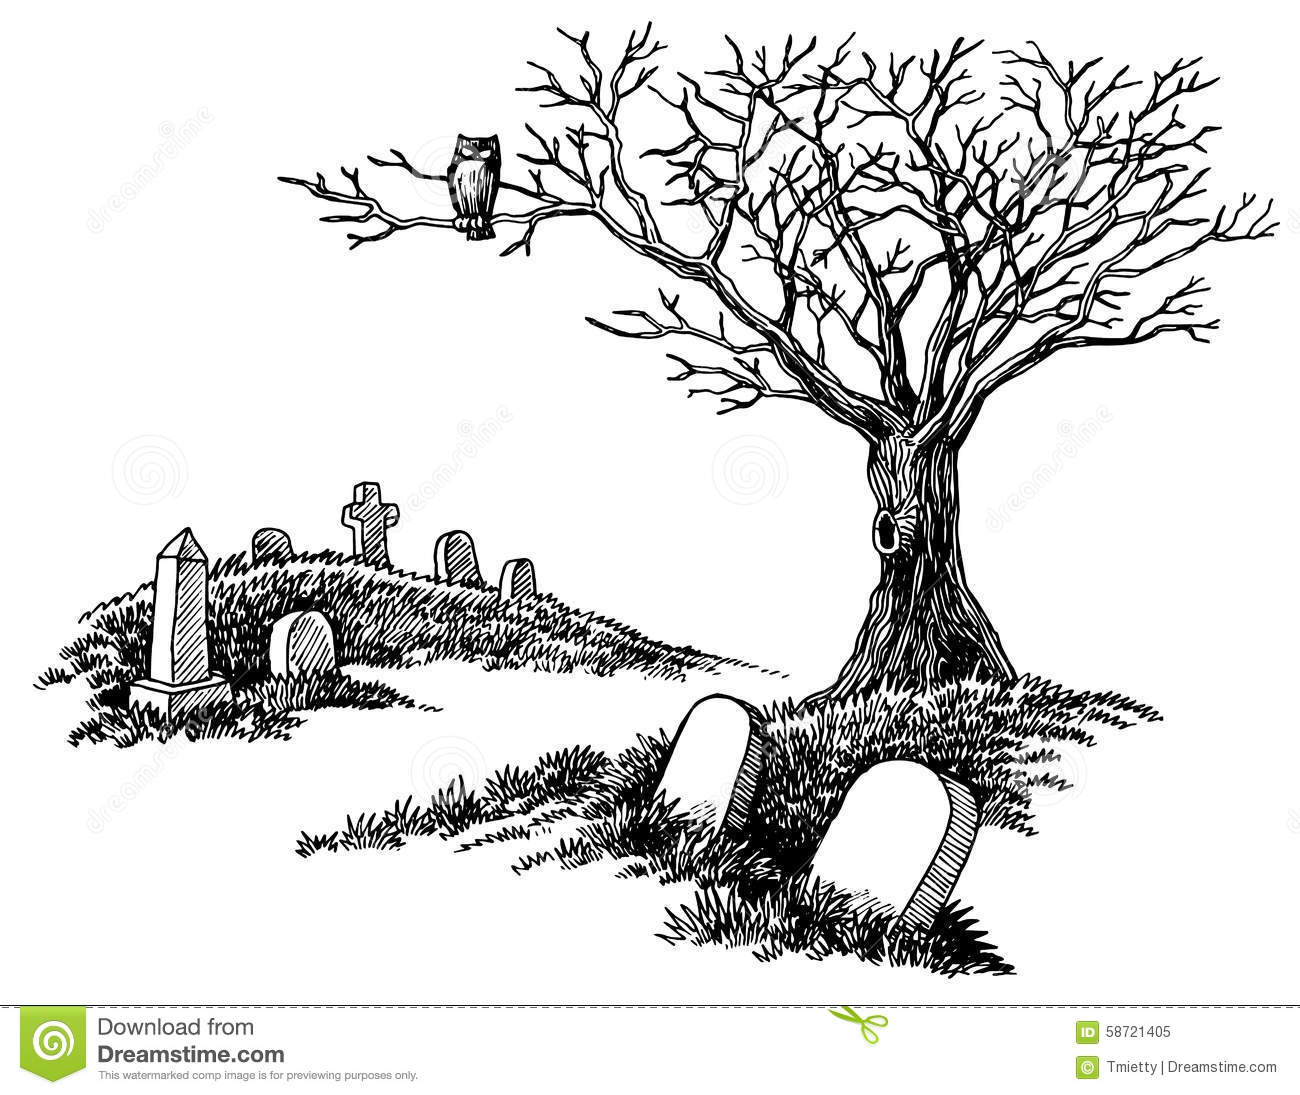 Dressage Horse Logos additionally Stock Illustration Hand Drawn Spooky Graveyard Tombstones Tree Owl Image58721405 furthermore Clipart Spooky Ghost 1 as well Desenhos Para Colorir Mumias besides Stock Illustration Halloween Tree Branch Spider Web Vector Illustration Image61333656. on scary clip art